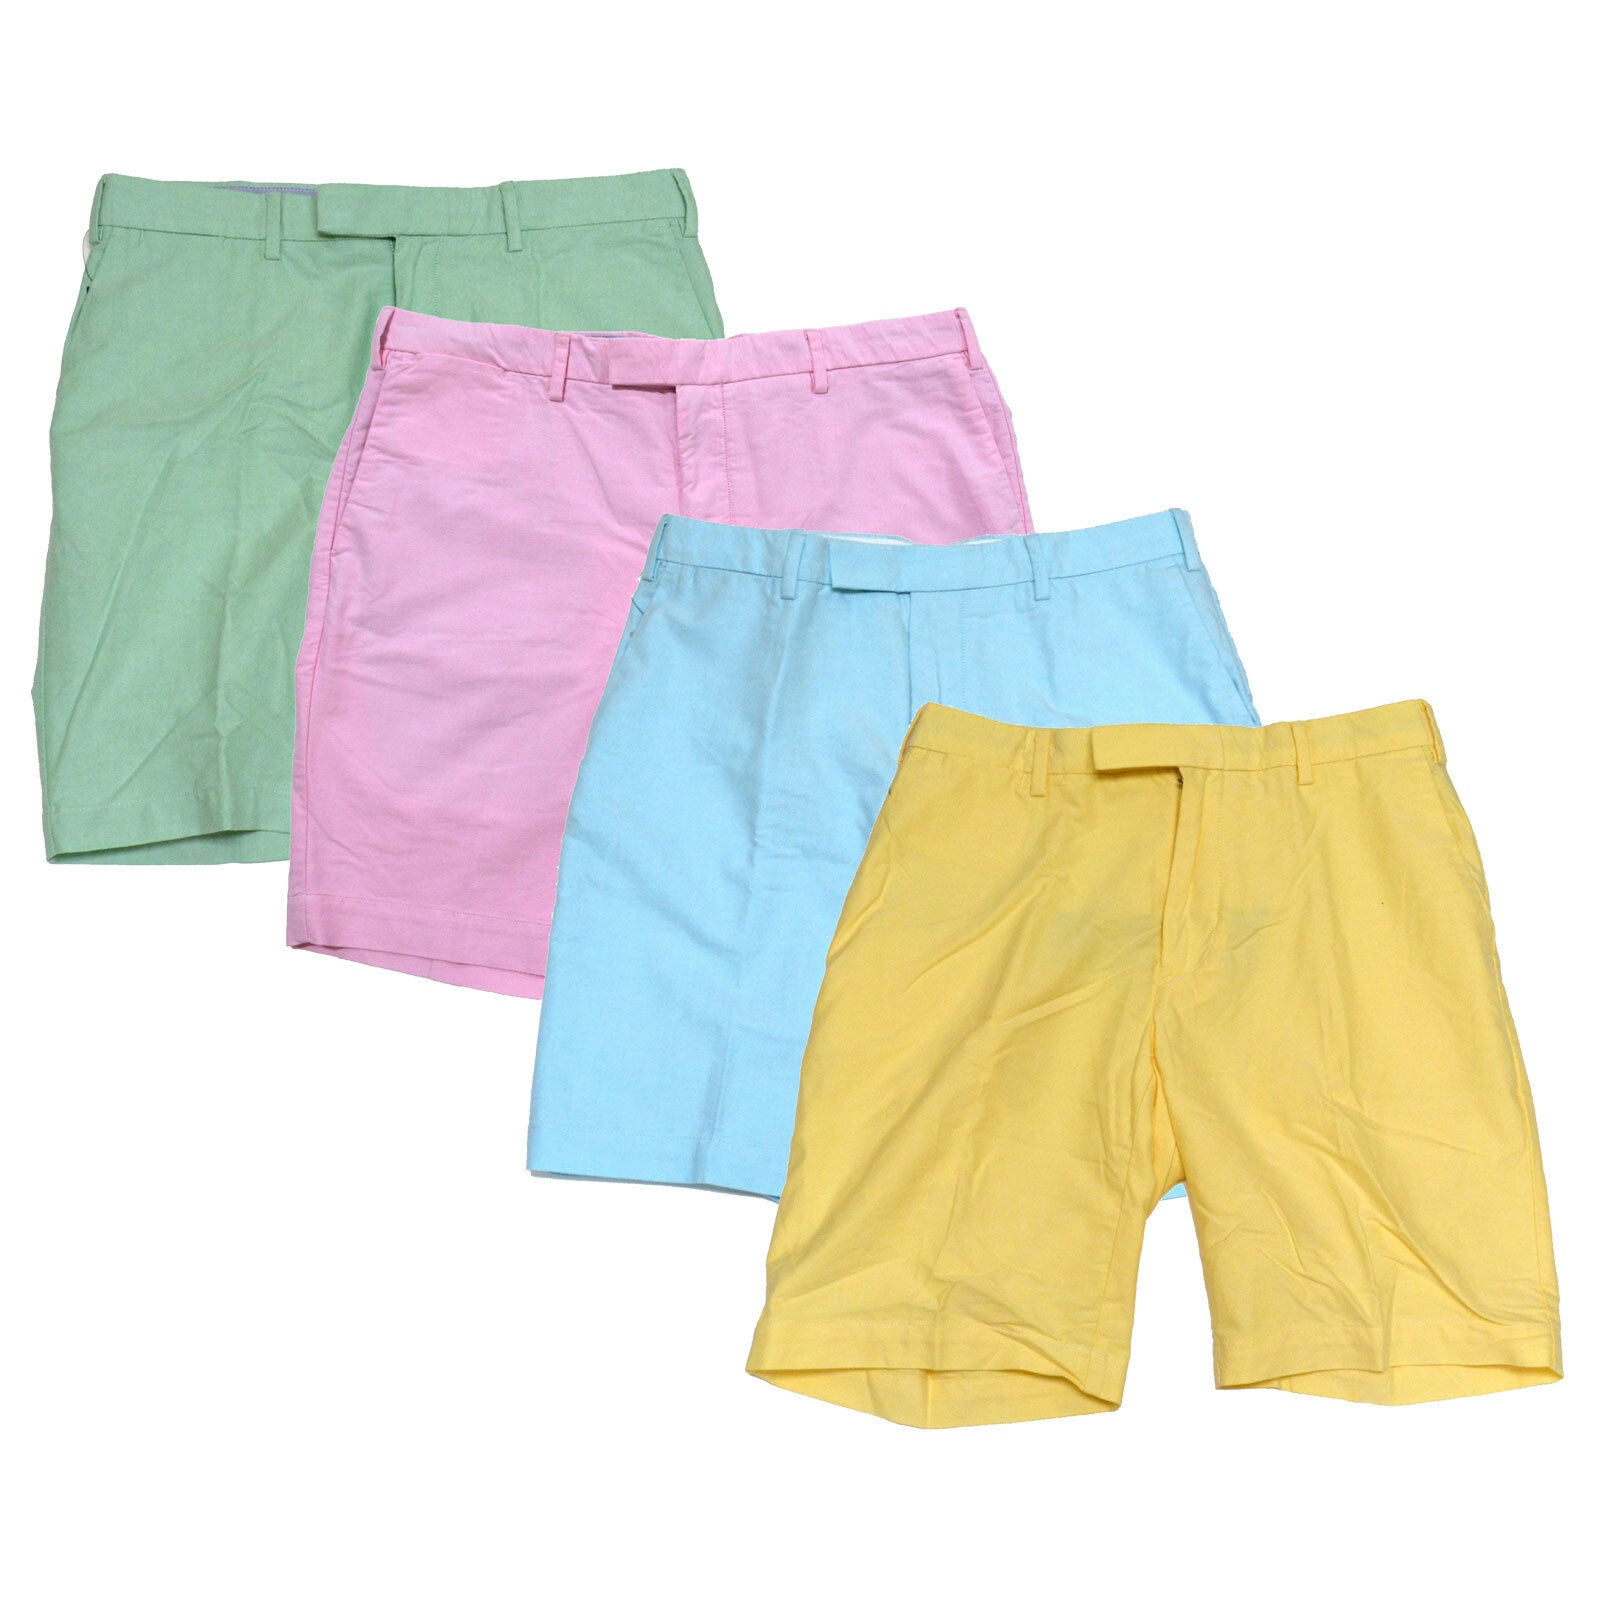 Polo Ralph Lauren Mens Classic Fit Shorts Casual Flat Front 35 36 38 40 42 Prl